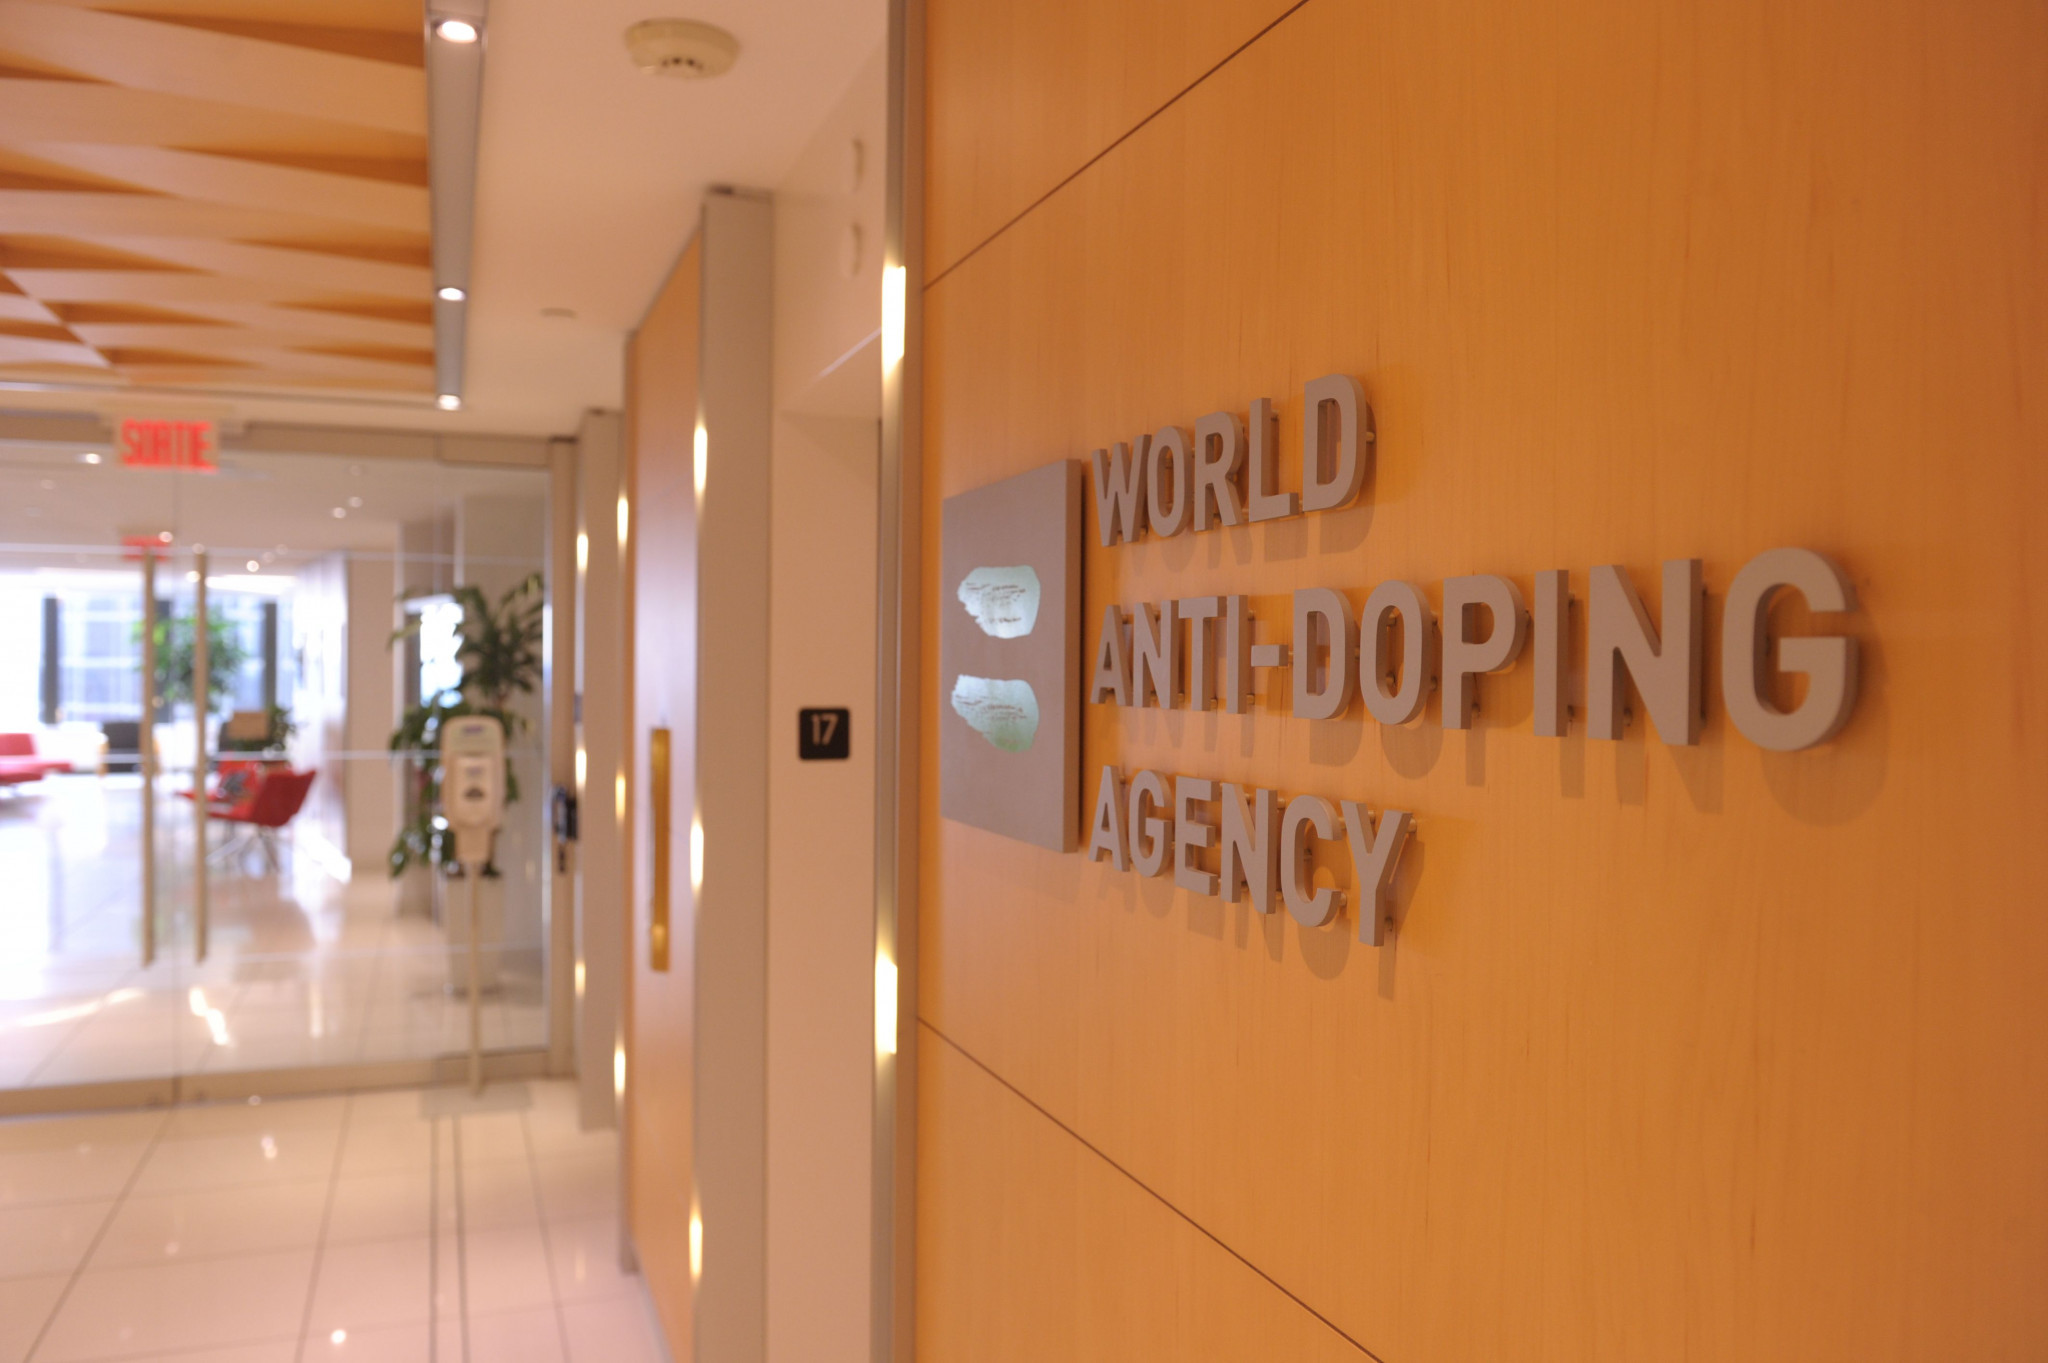 The World Anti-Doping Agency could declare the Russian Anti-Doping Agency non-compliant again if evidence of tampering is proven ©Getty Images